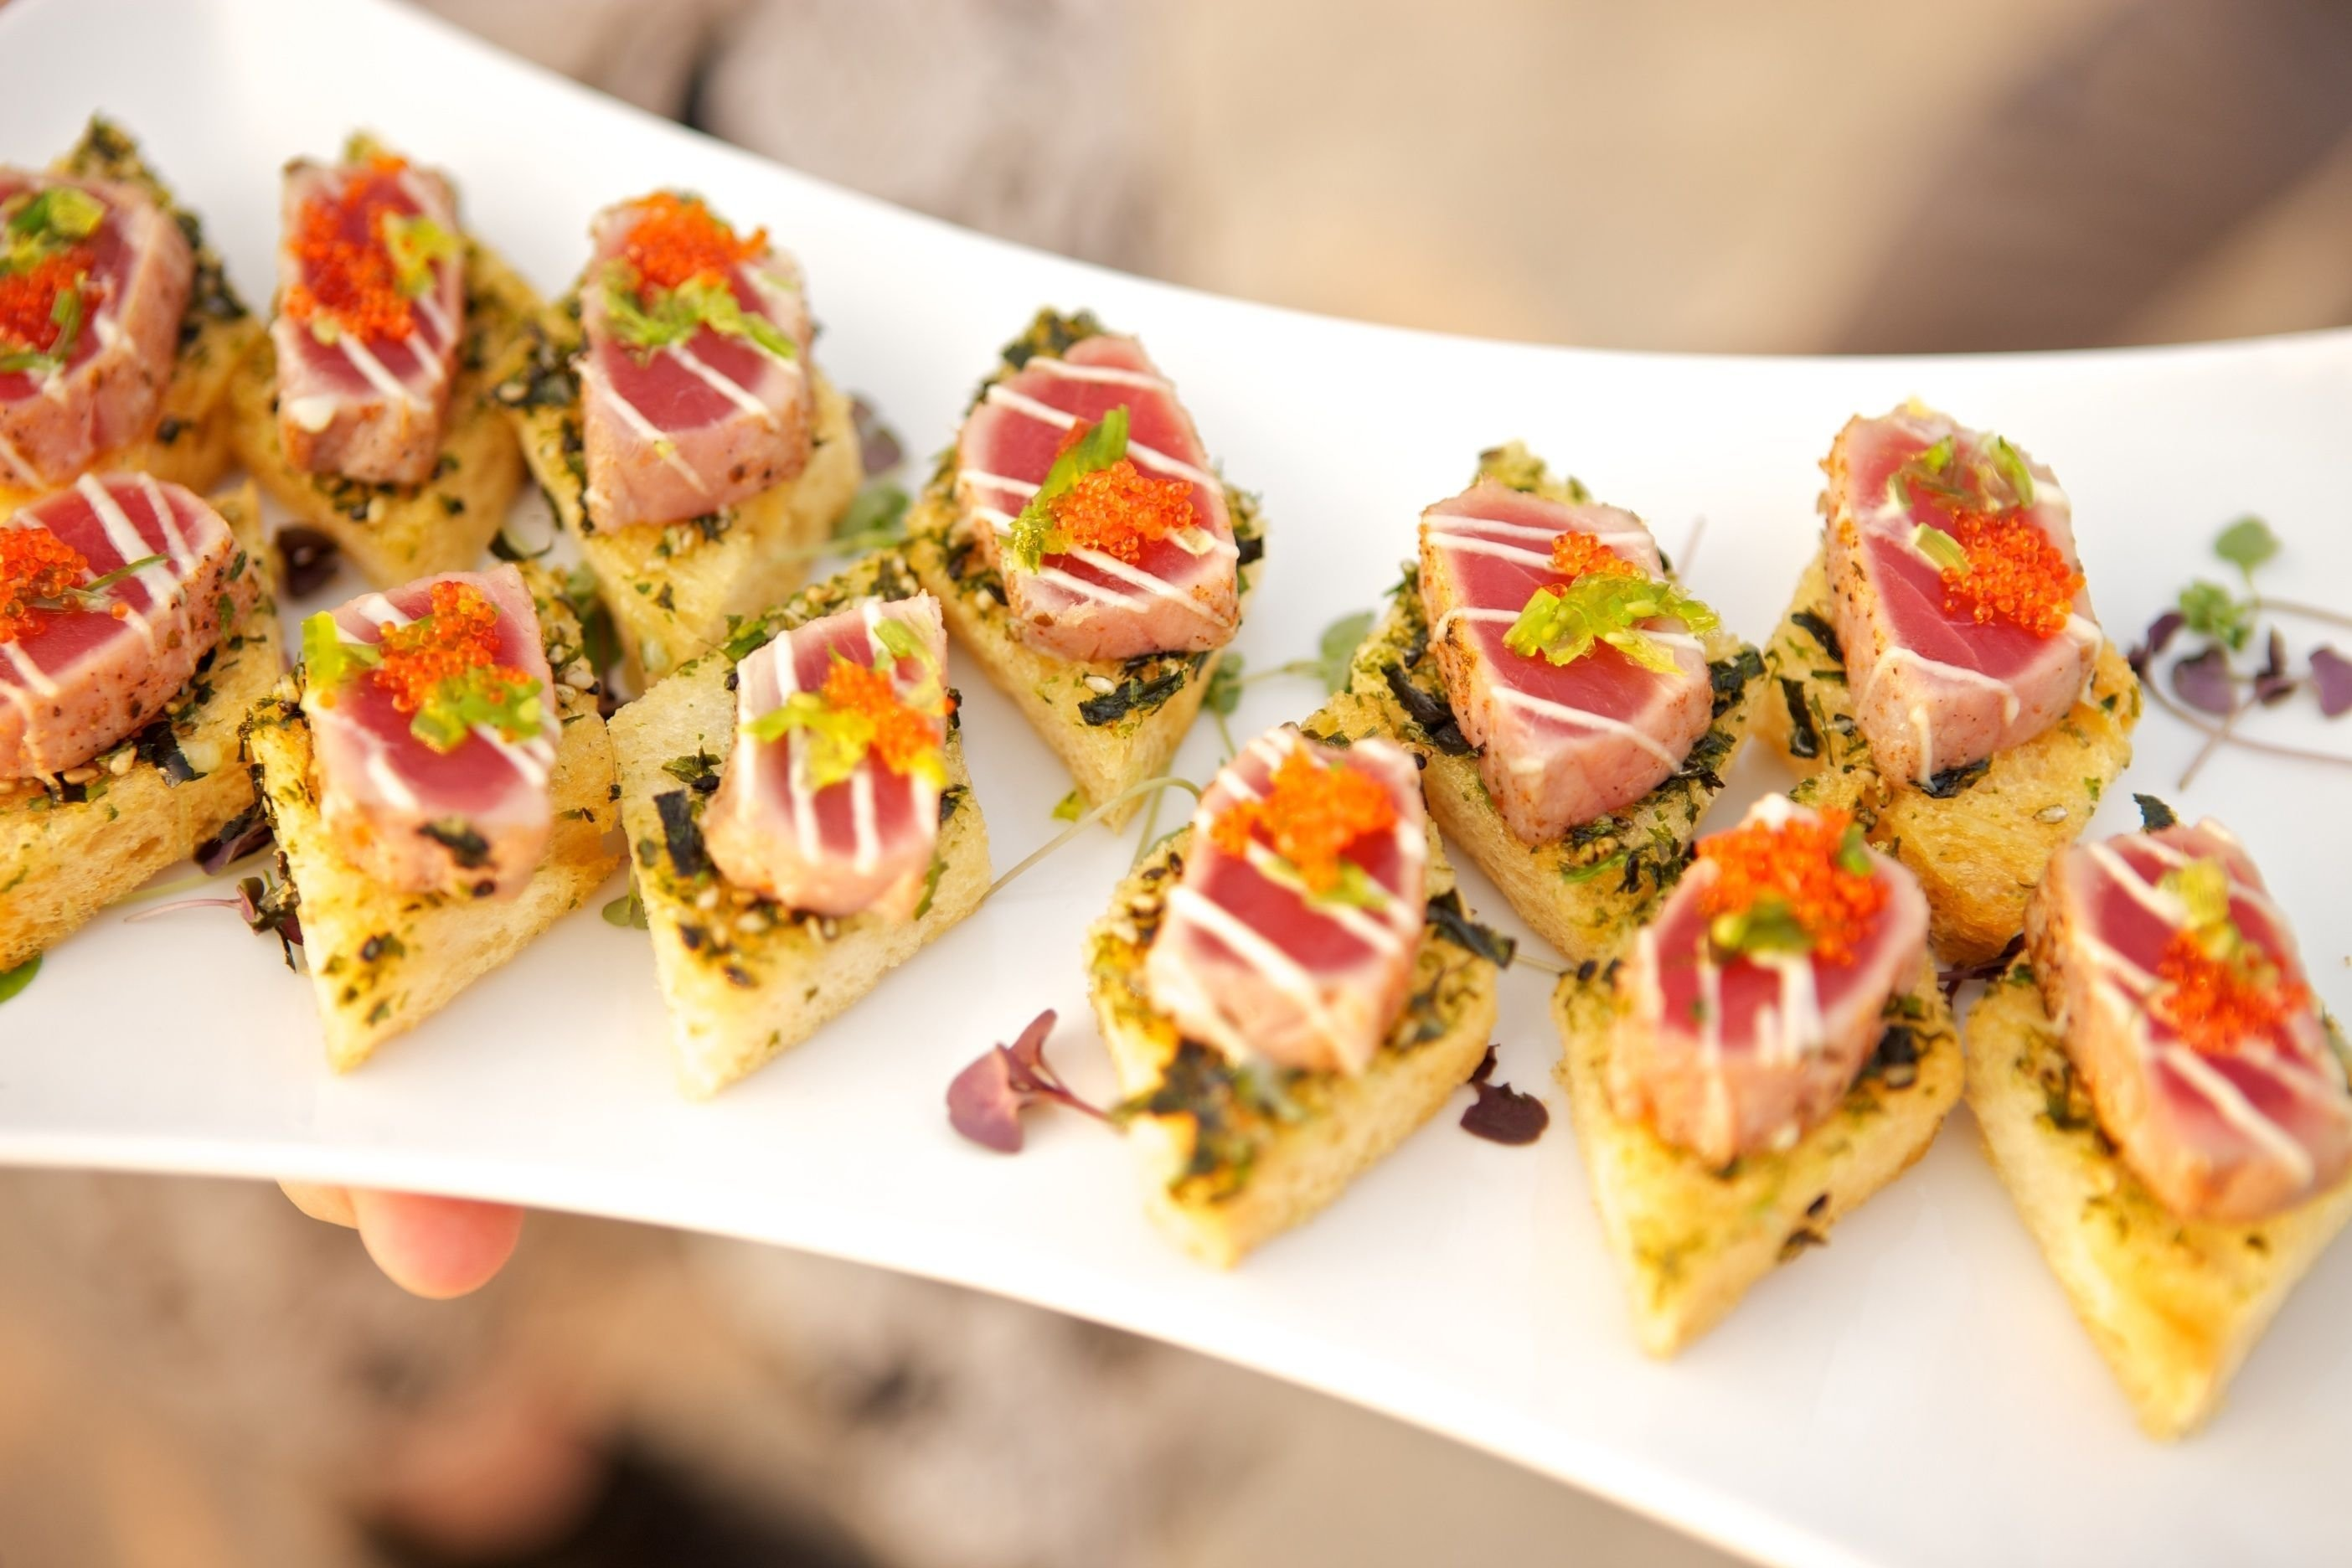 10 Nice Passed Hors D Oeuvres Ideas passed hors doeuvres seared ahi tuna on nori crostini with wasabi 2021